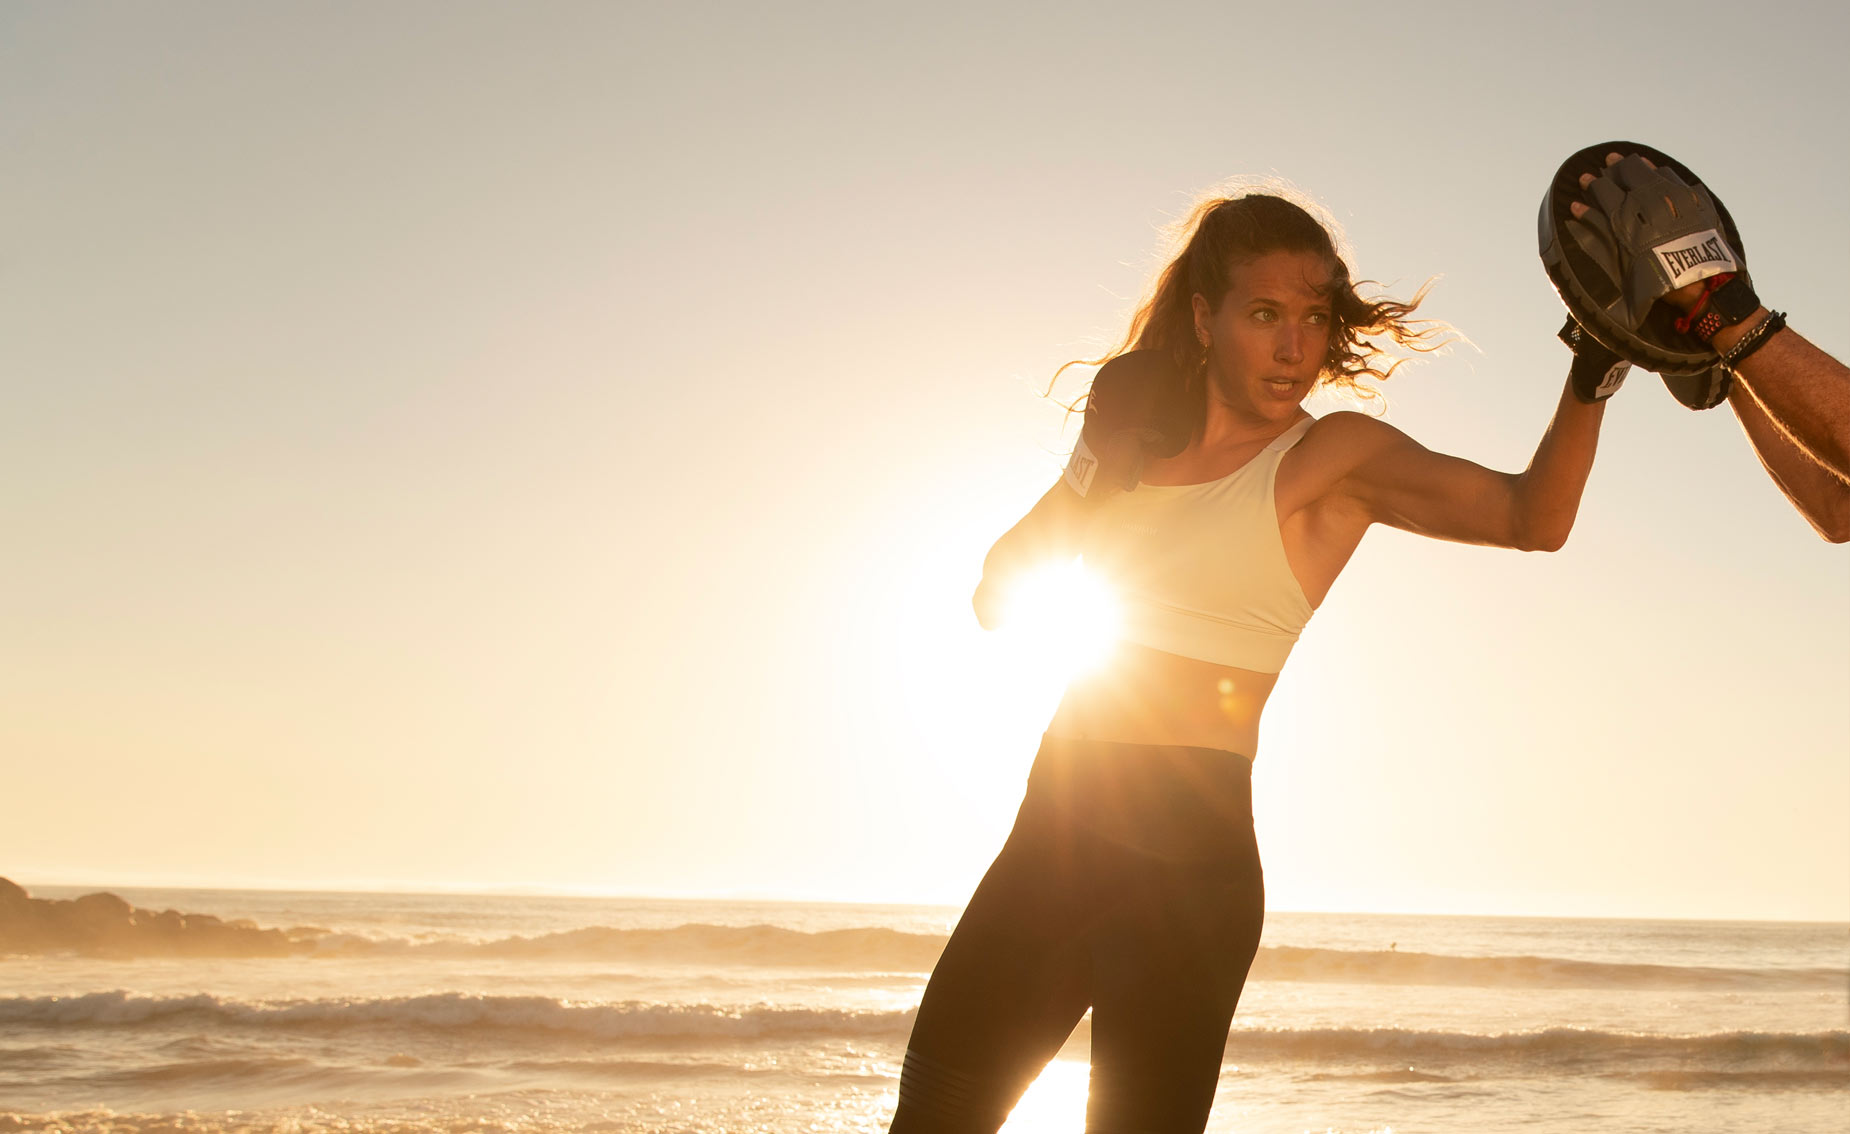 The Best Way to Lose Weight is to Gain Strength and Fitness